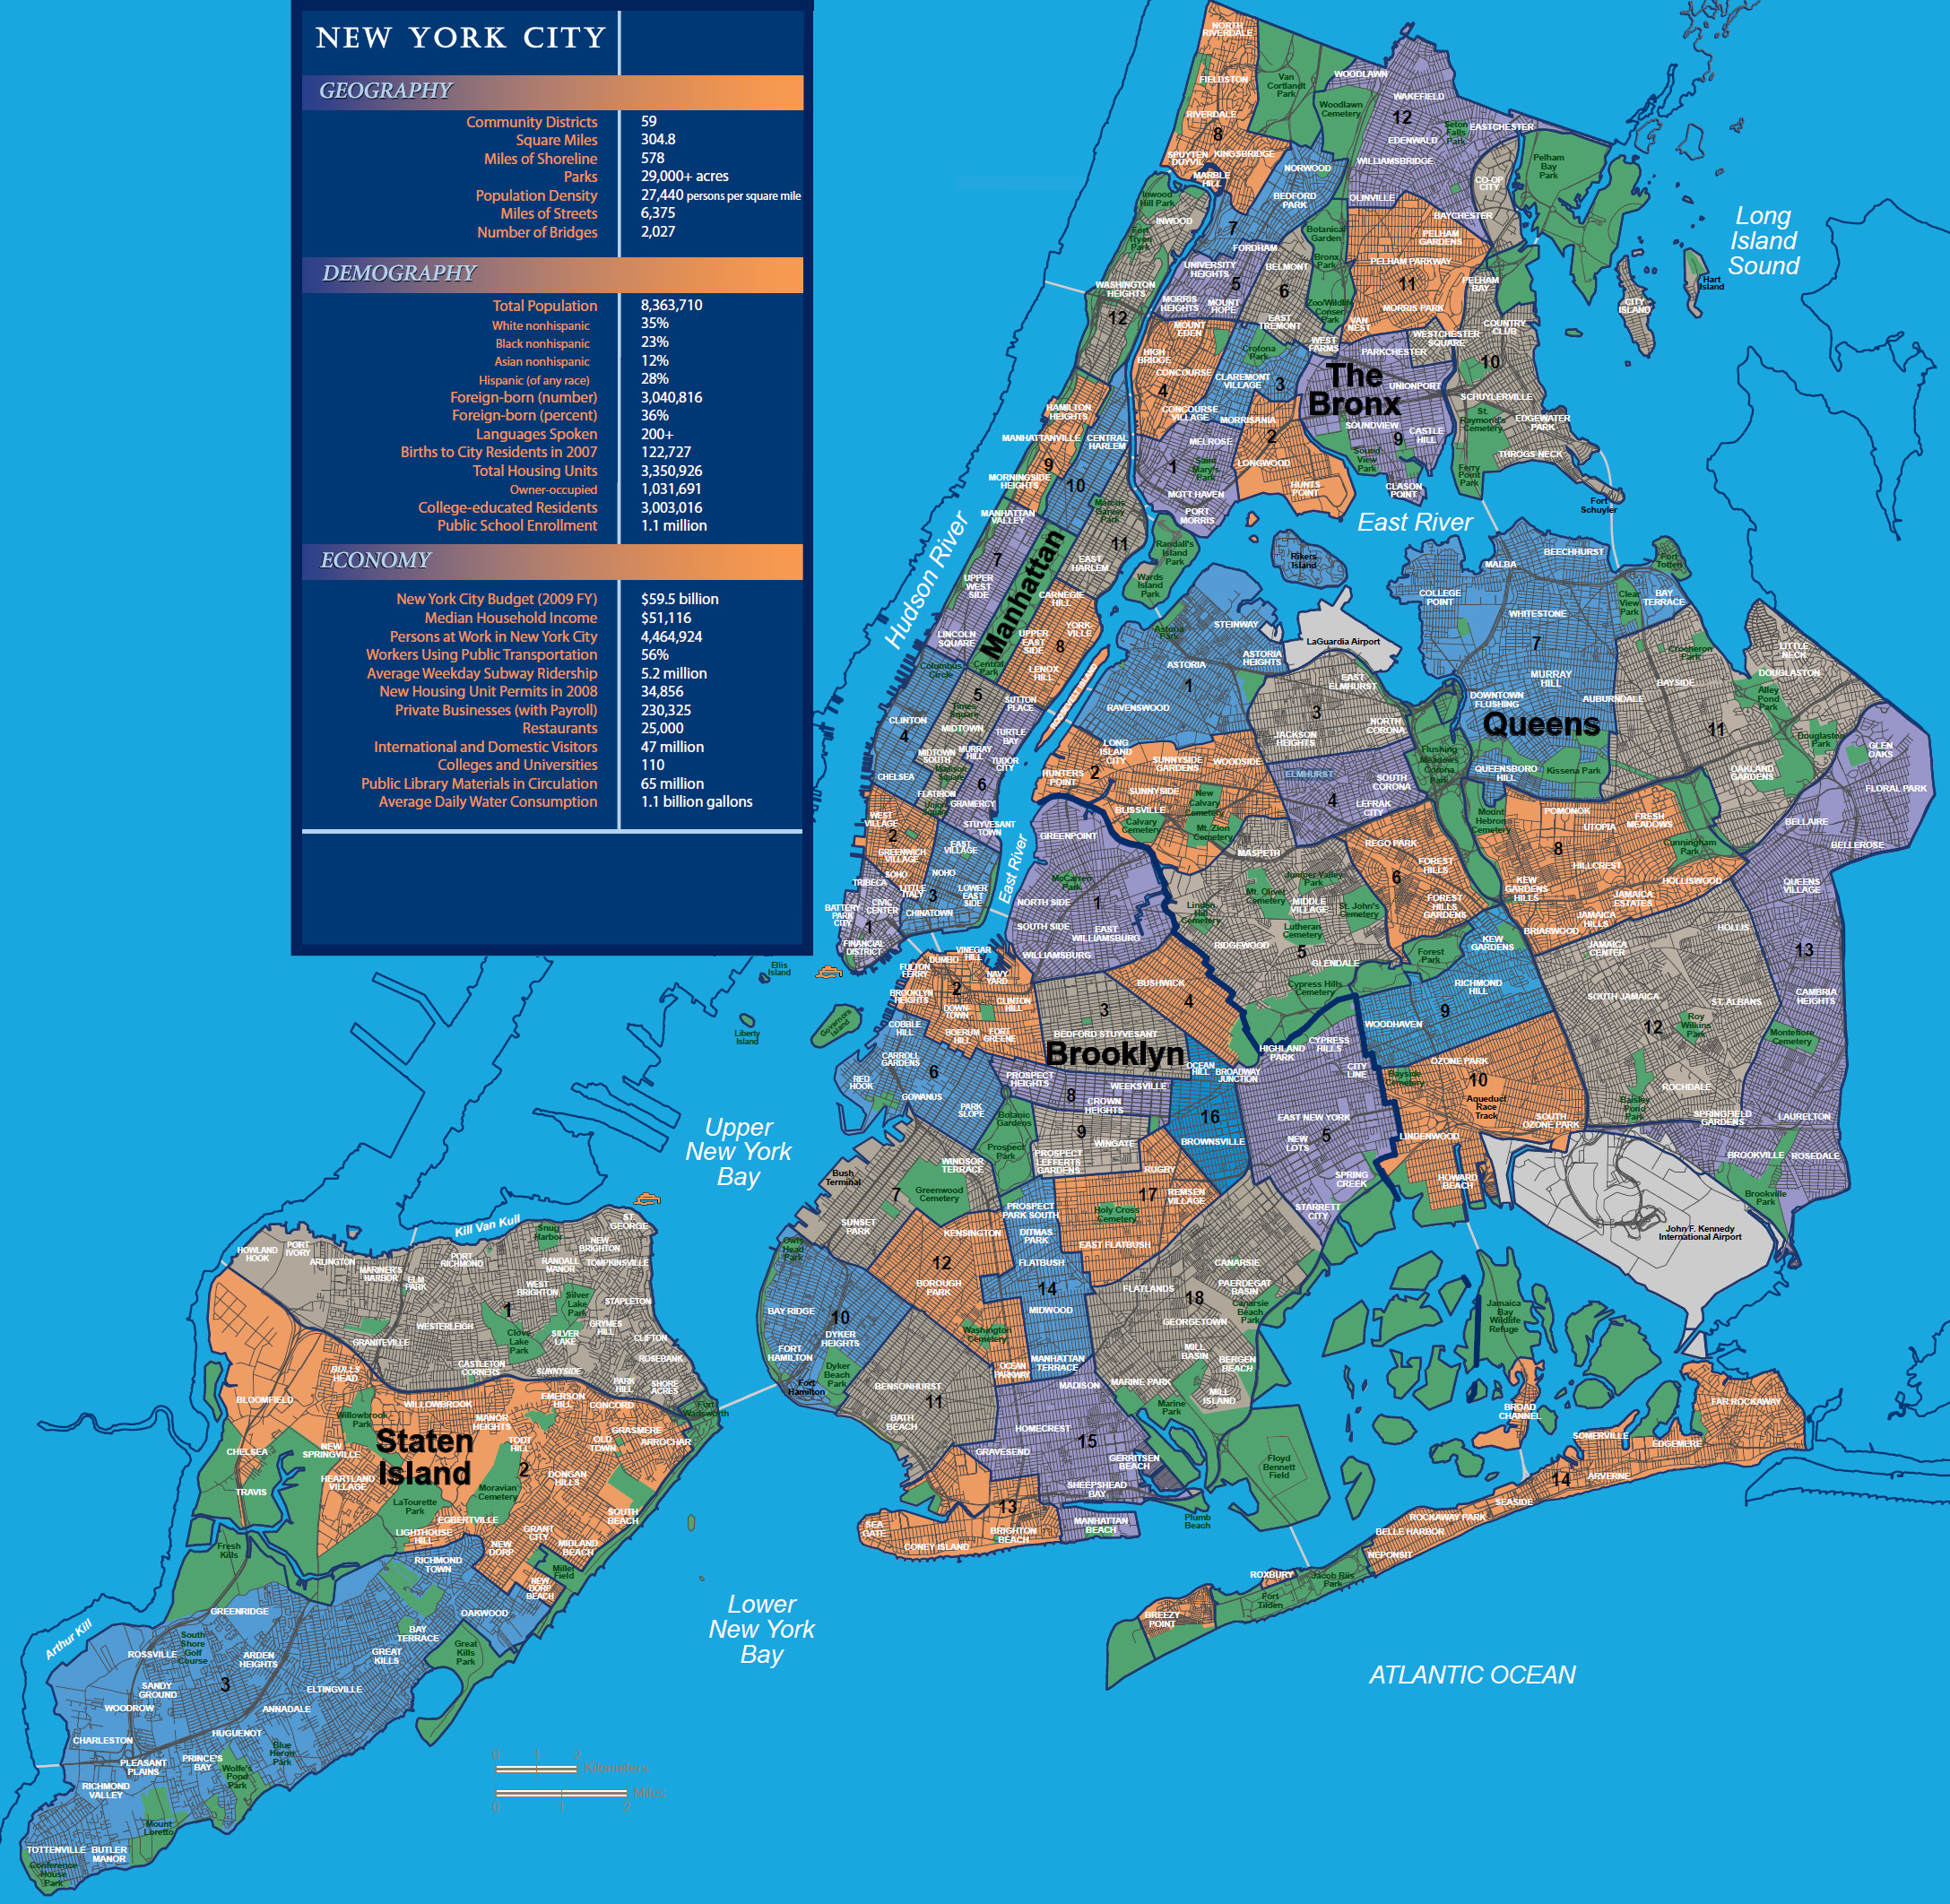 New York City Neighborhoods Map WoD Gotham - New york map city